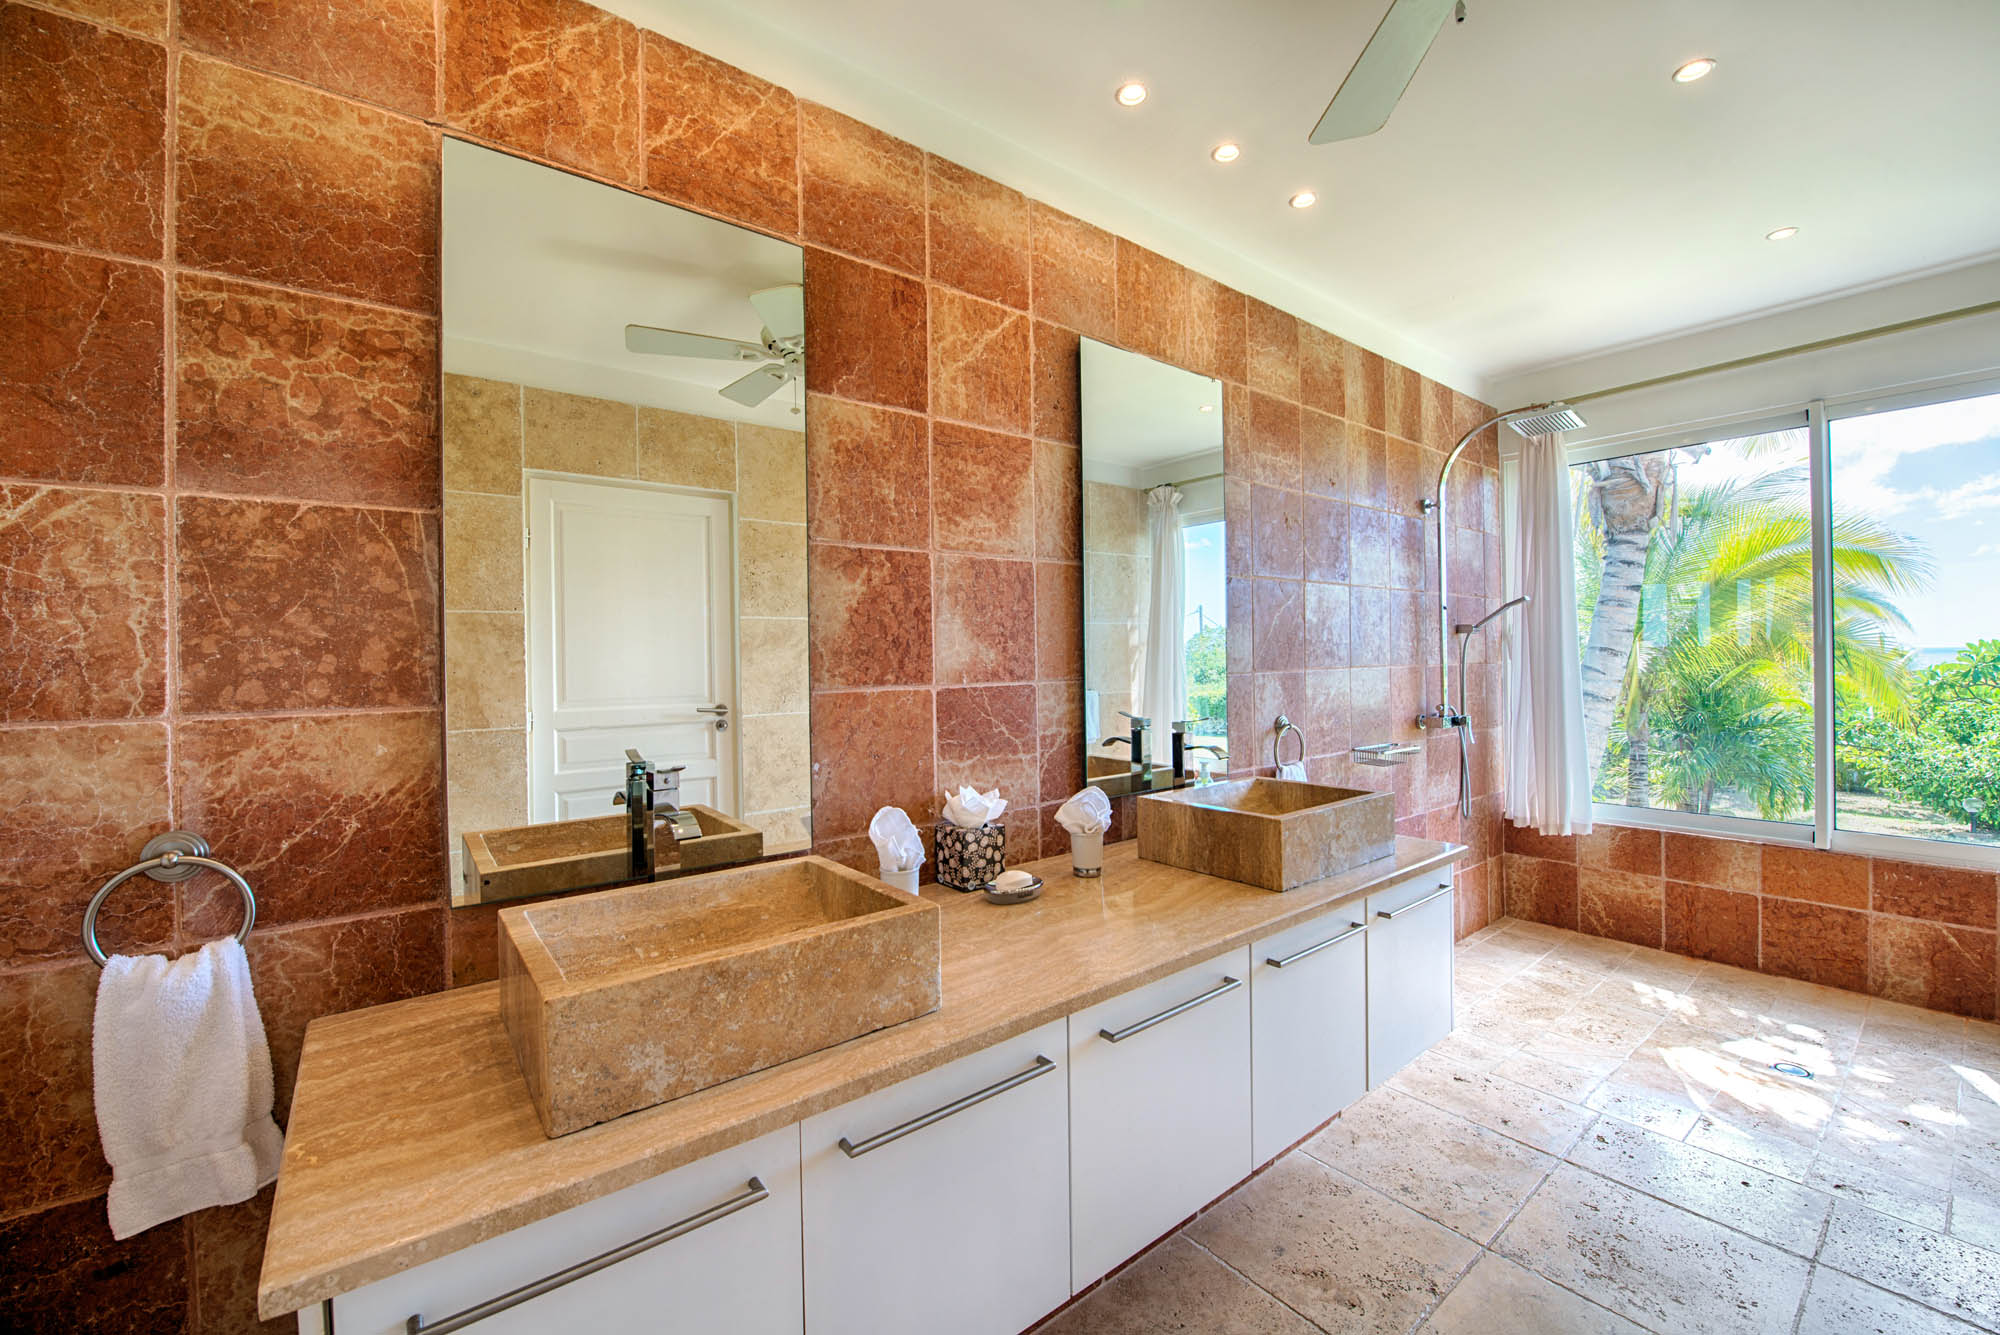 Luxury and elegant ambience making the bathroom of Lune de Miel villa rental, Baie Longue, Terres-Basses a highlight.